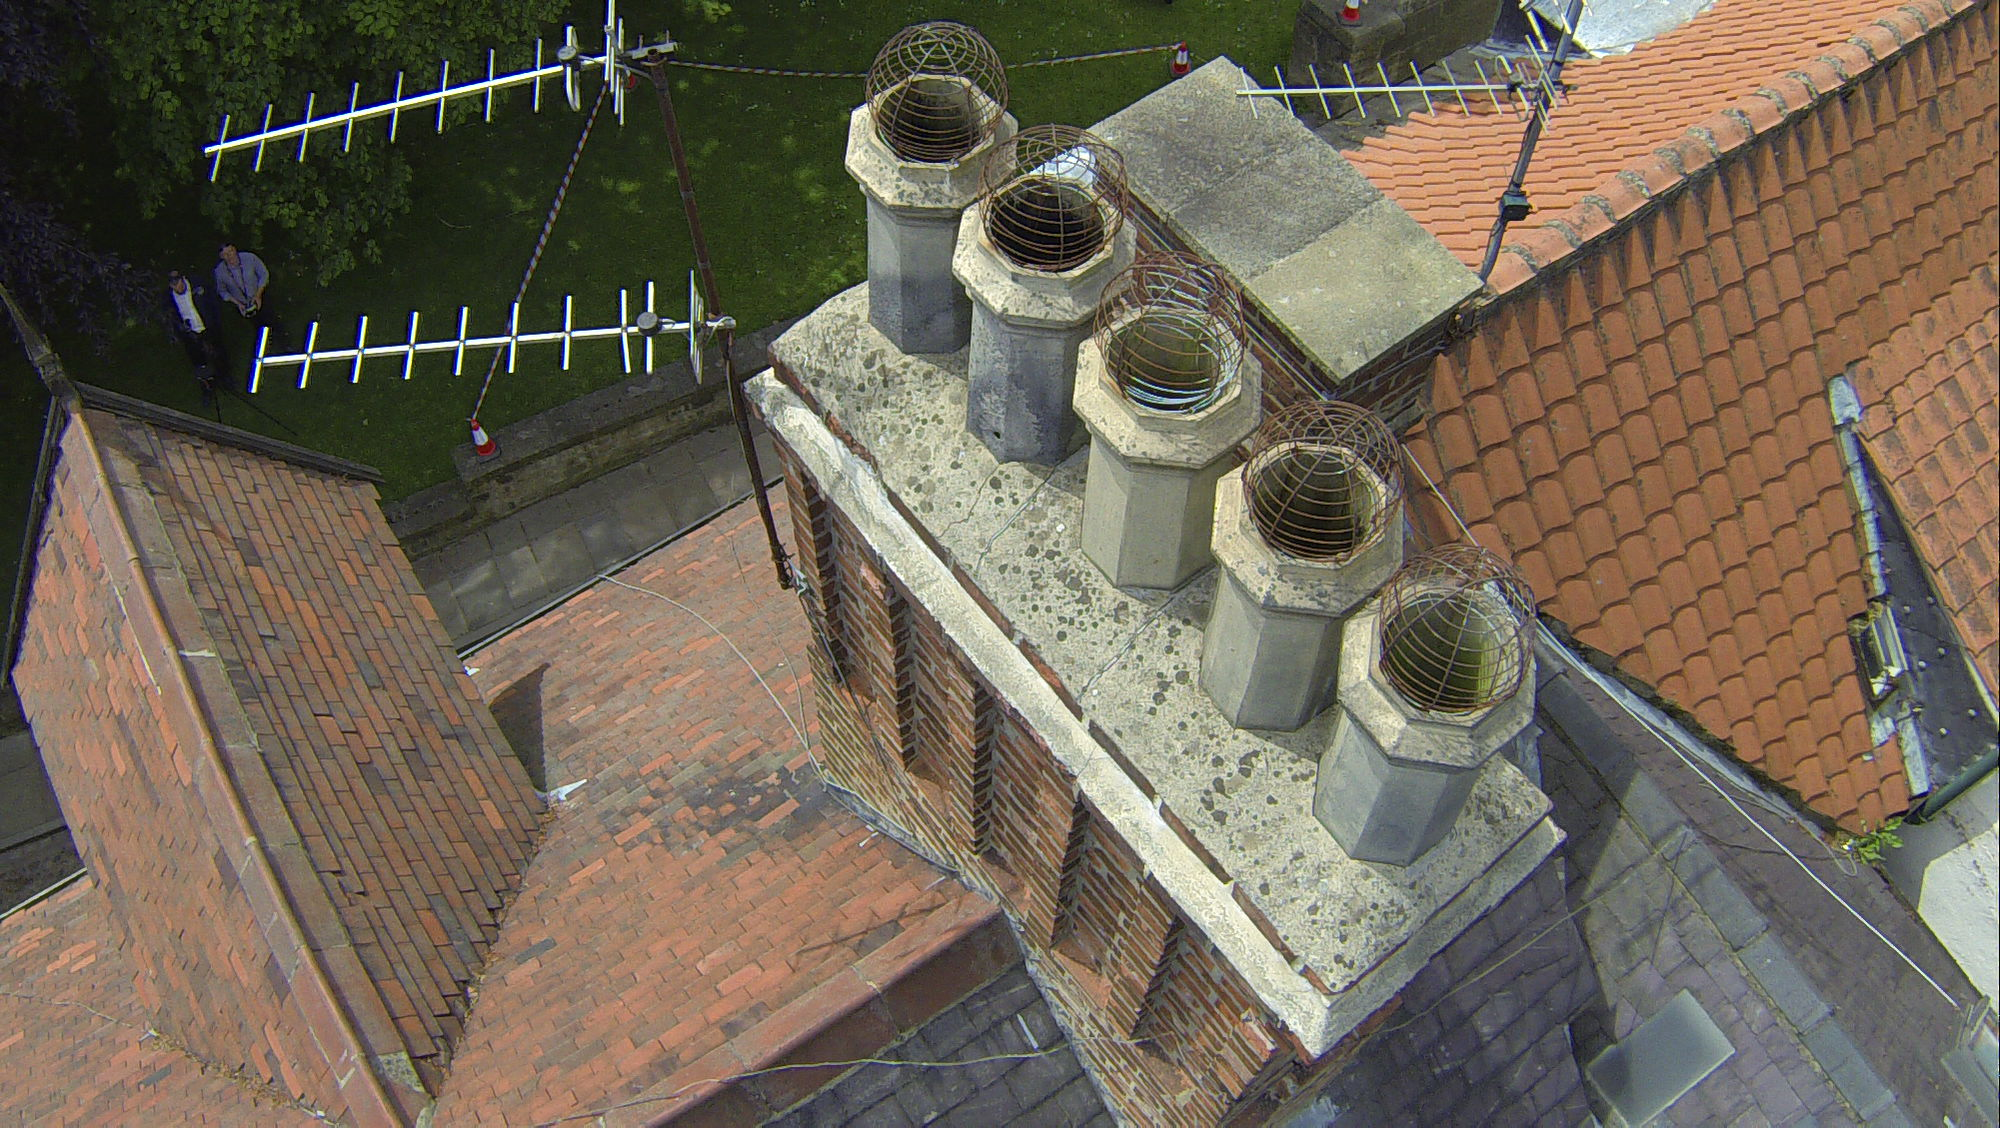 Aerial view of chimneys - Survey drones